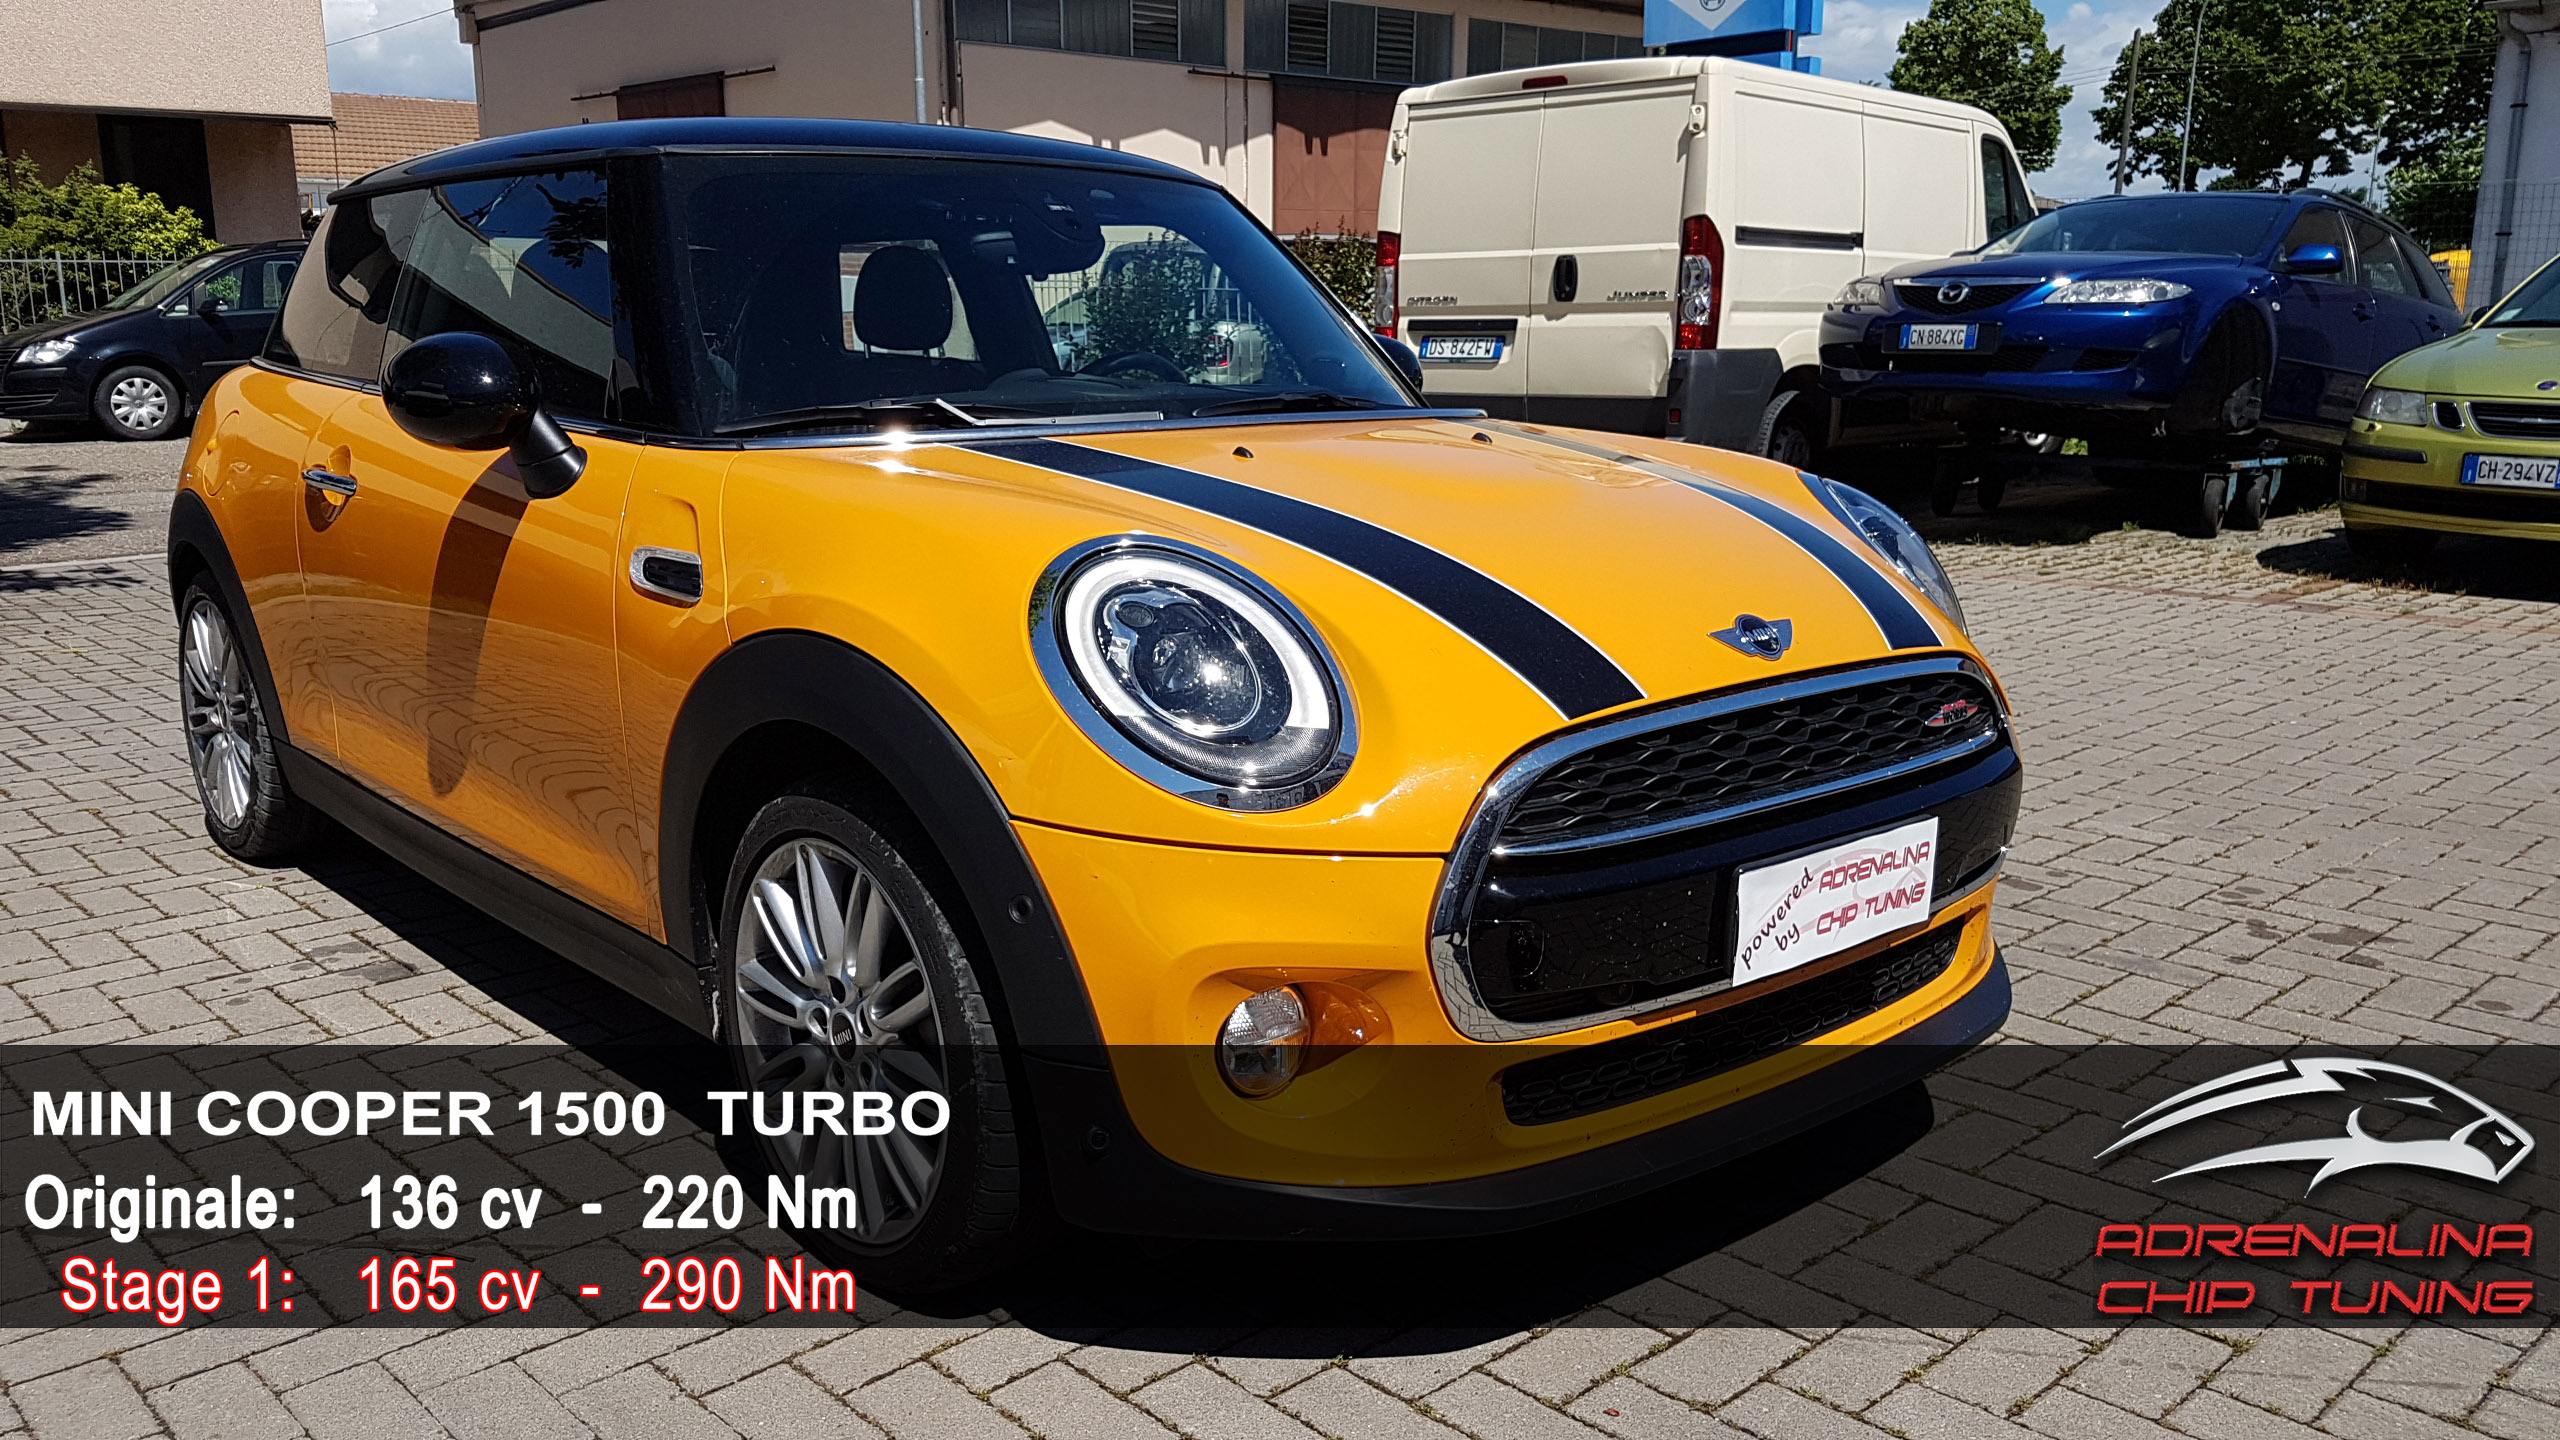 Mini Cooper F56 1500 Turbo